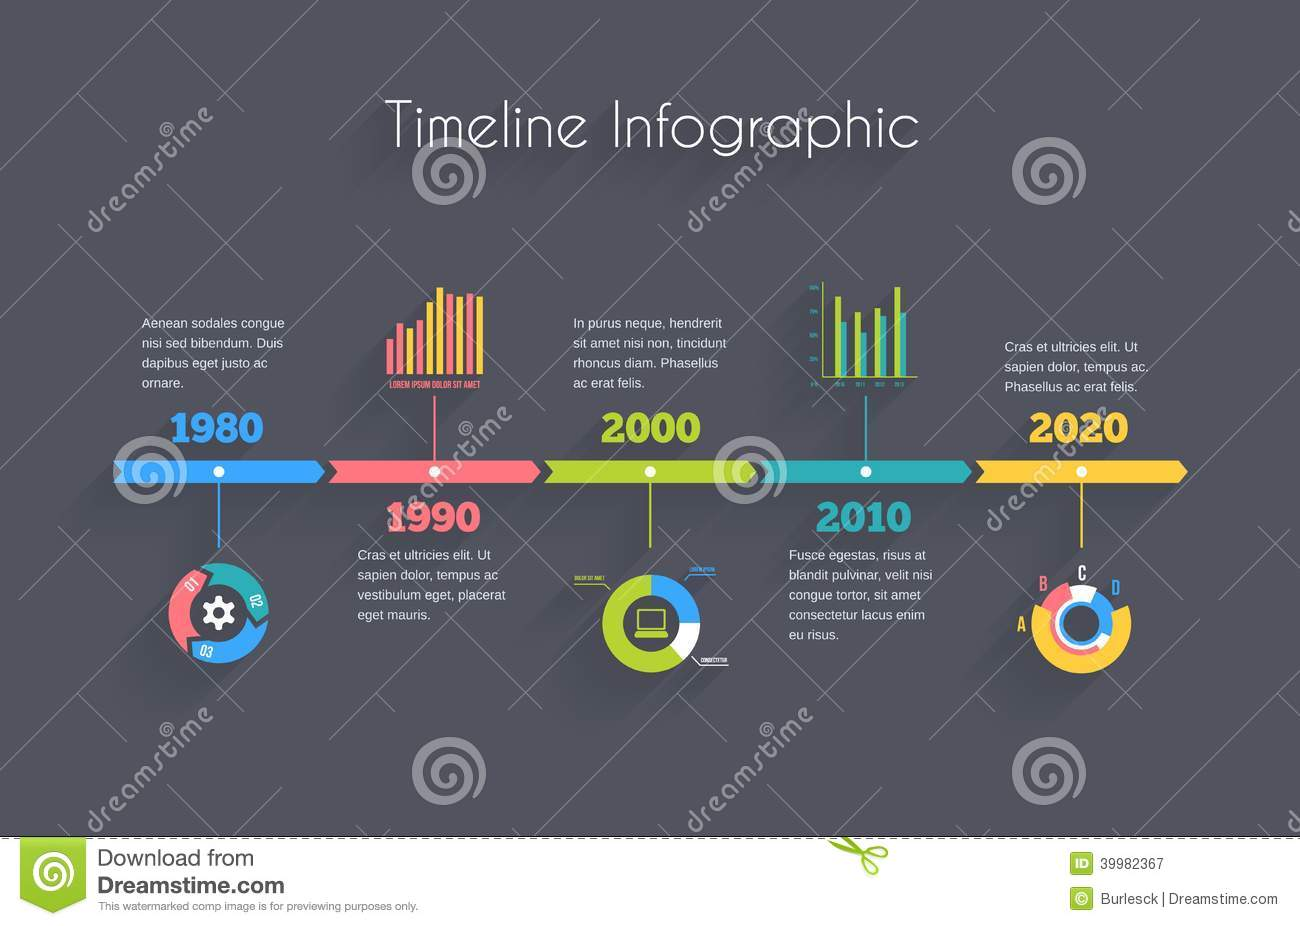 Timeline Infographic Template Stock Vector - Image: 39982367